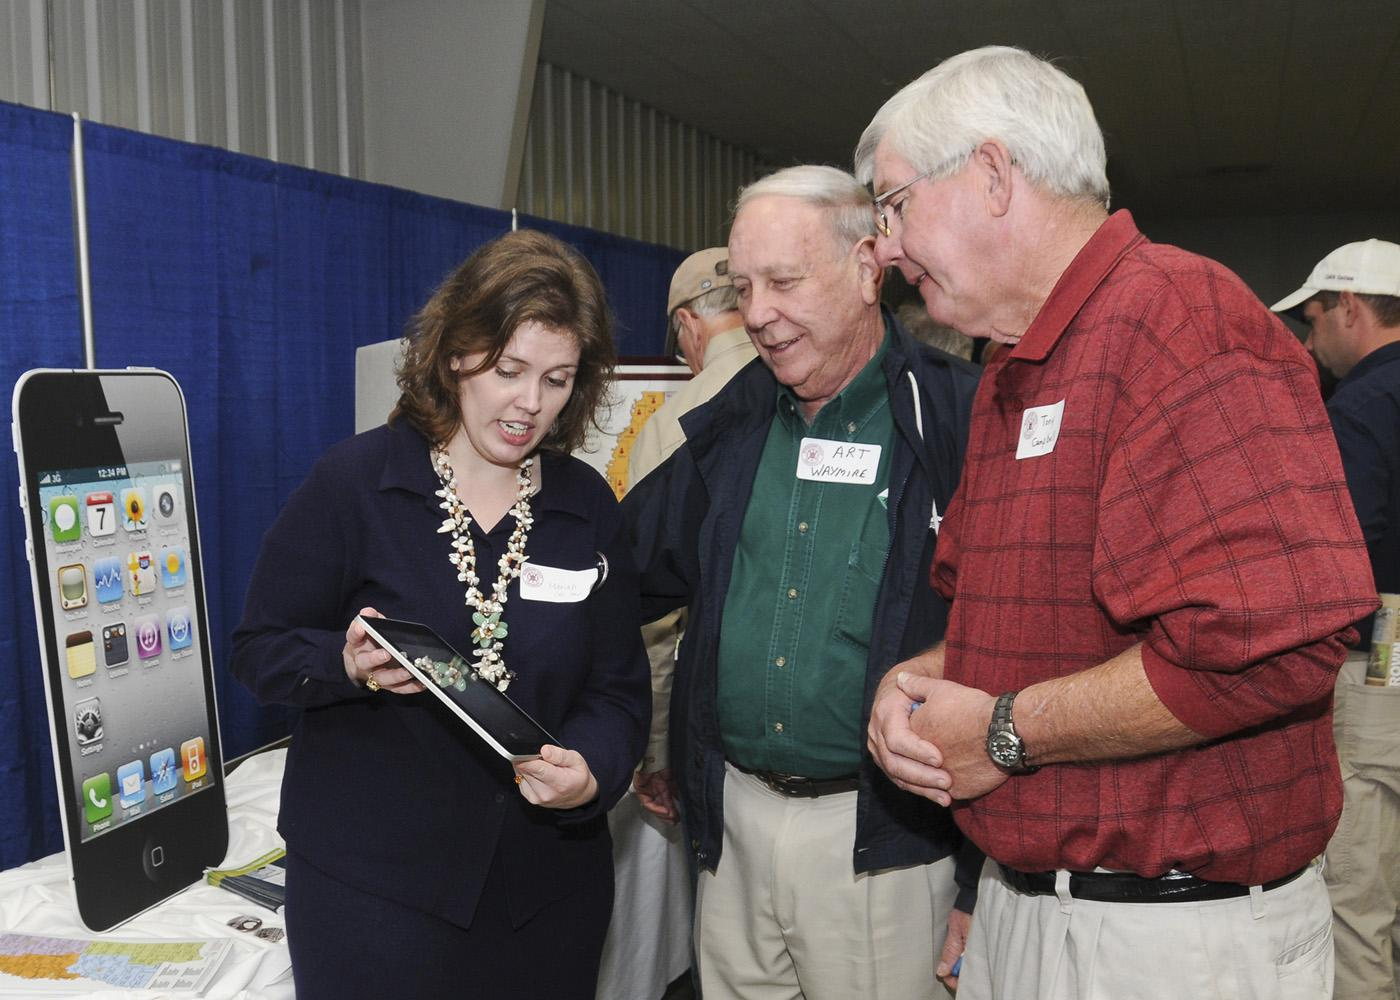 Mariah Smith (left), Extension computer applications instructor, discusses the iPad and its use in agricultural production with Art Waymire (center), a tree farmer from Marshall County, and Tony Campbell, a cotton and soybean farmer from Itawamba County. (Photo by Scott Corey)